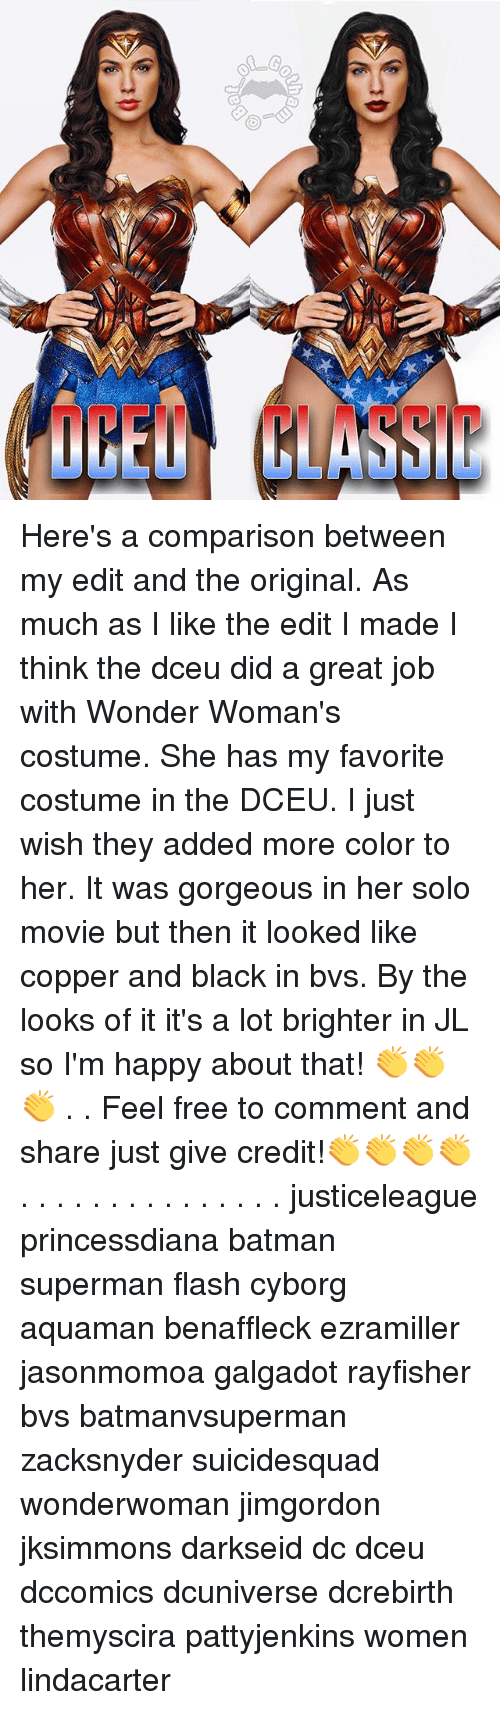 Batman, Memes, and Superman: Here's a comparison between my edit and the original. As much as I like the edit I made I think the dceu did a great job with Wonder Woman's costume. She has my favorite costume in the DCEU. I just wish they added more color to her. It was gorgeous in her solo movie but then it looked like copper and black in bvs. By the looks of it it's a lot brighter in JL so I'm happy about that! 👏👏👏 . . Feel free to comment and share just give credit!👏👏👏👏 . . . . . . . . . . . . . . . justiceleague princessdiana batman superman flash cyborg aquaman benaffleck ezramiller jasonmomoa galgadot rayfisher bvs batmanvsuperman zacksnyder suicidesquad wonderwoman jimgordon jksimmons darkseid dc dceu dccomics dcuniverse dcrebirth themyscira pattyjenkins women lindacarter